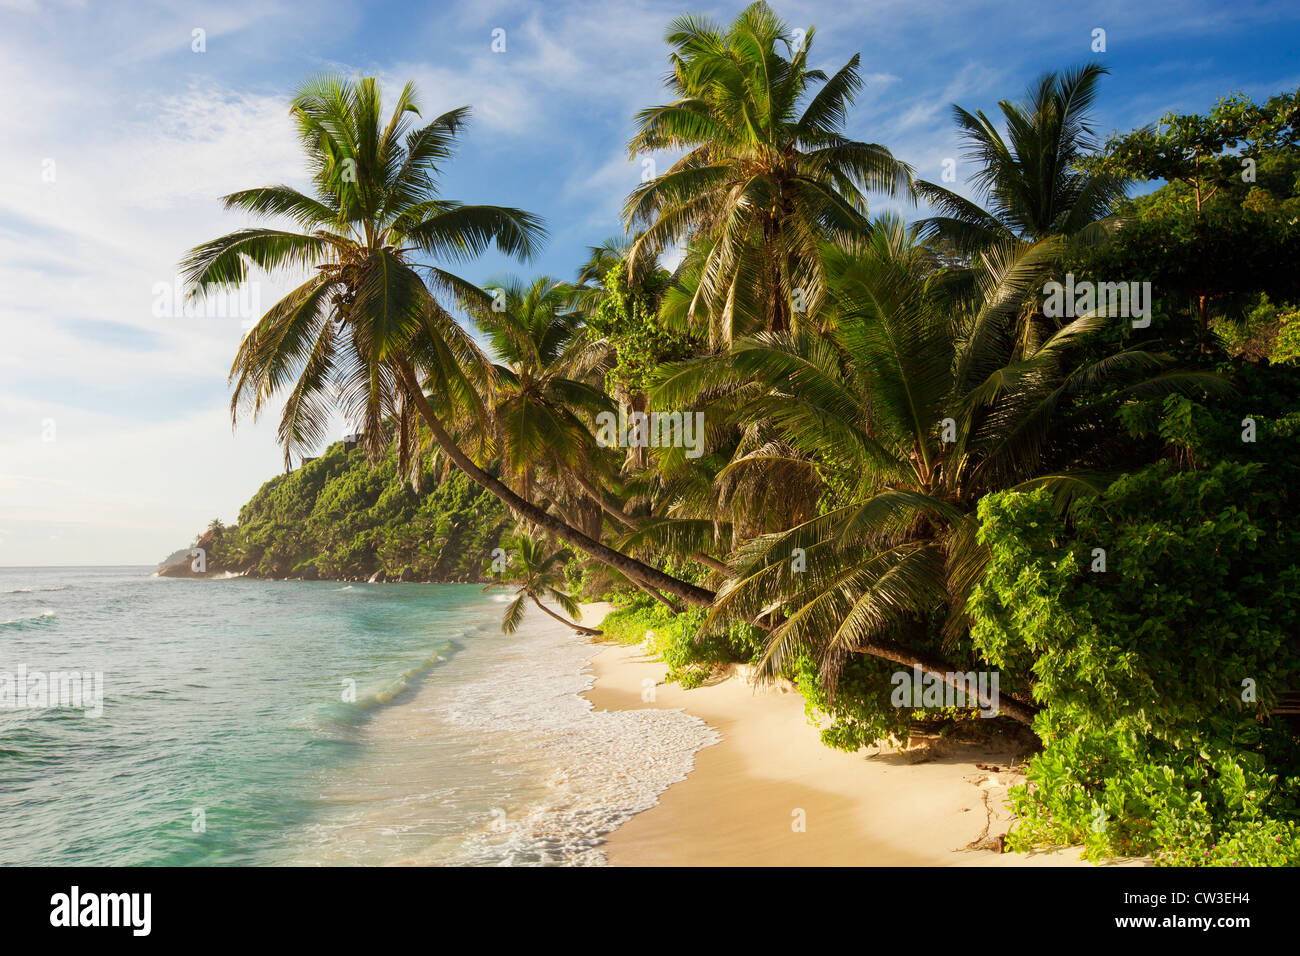 Leaning palm trees on beach,Cousine Island.Seychelles - Stock Image